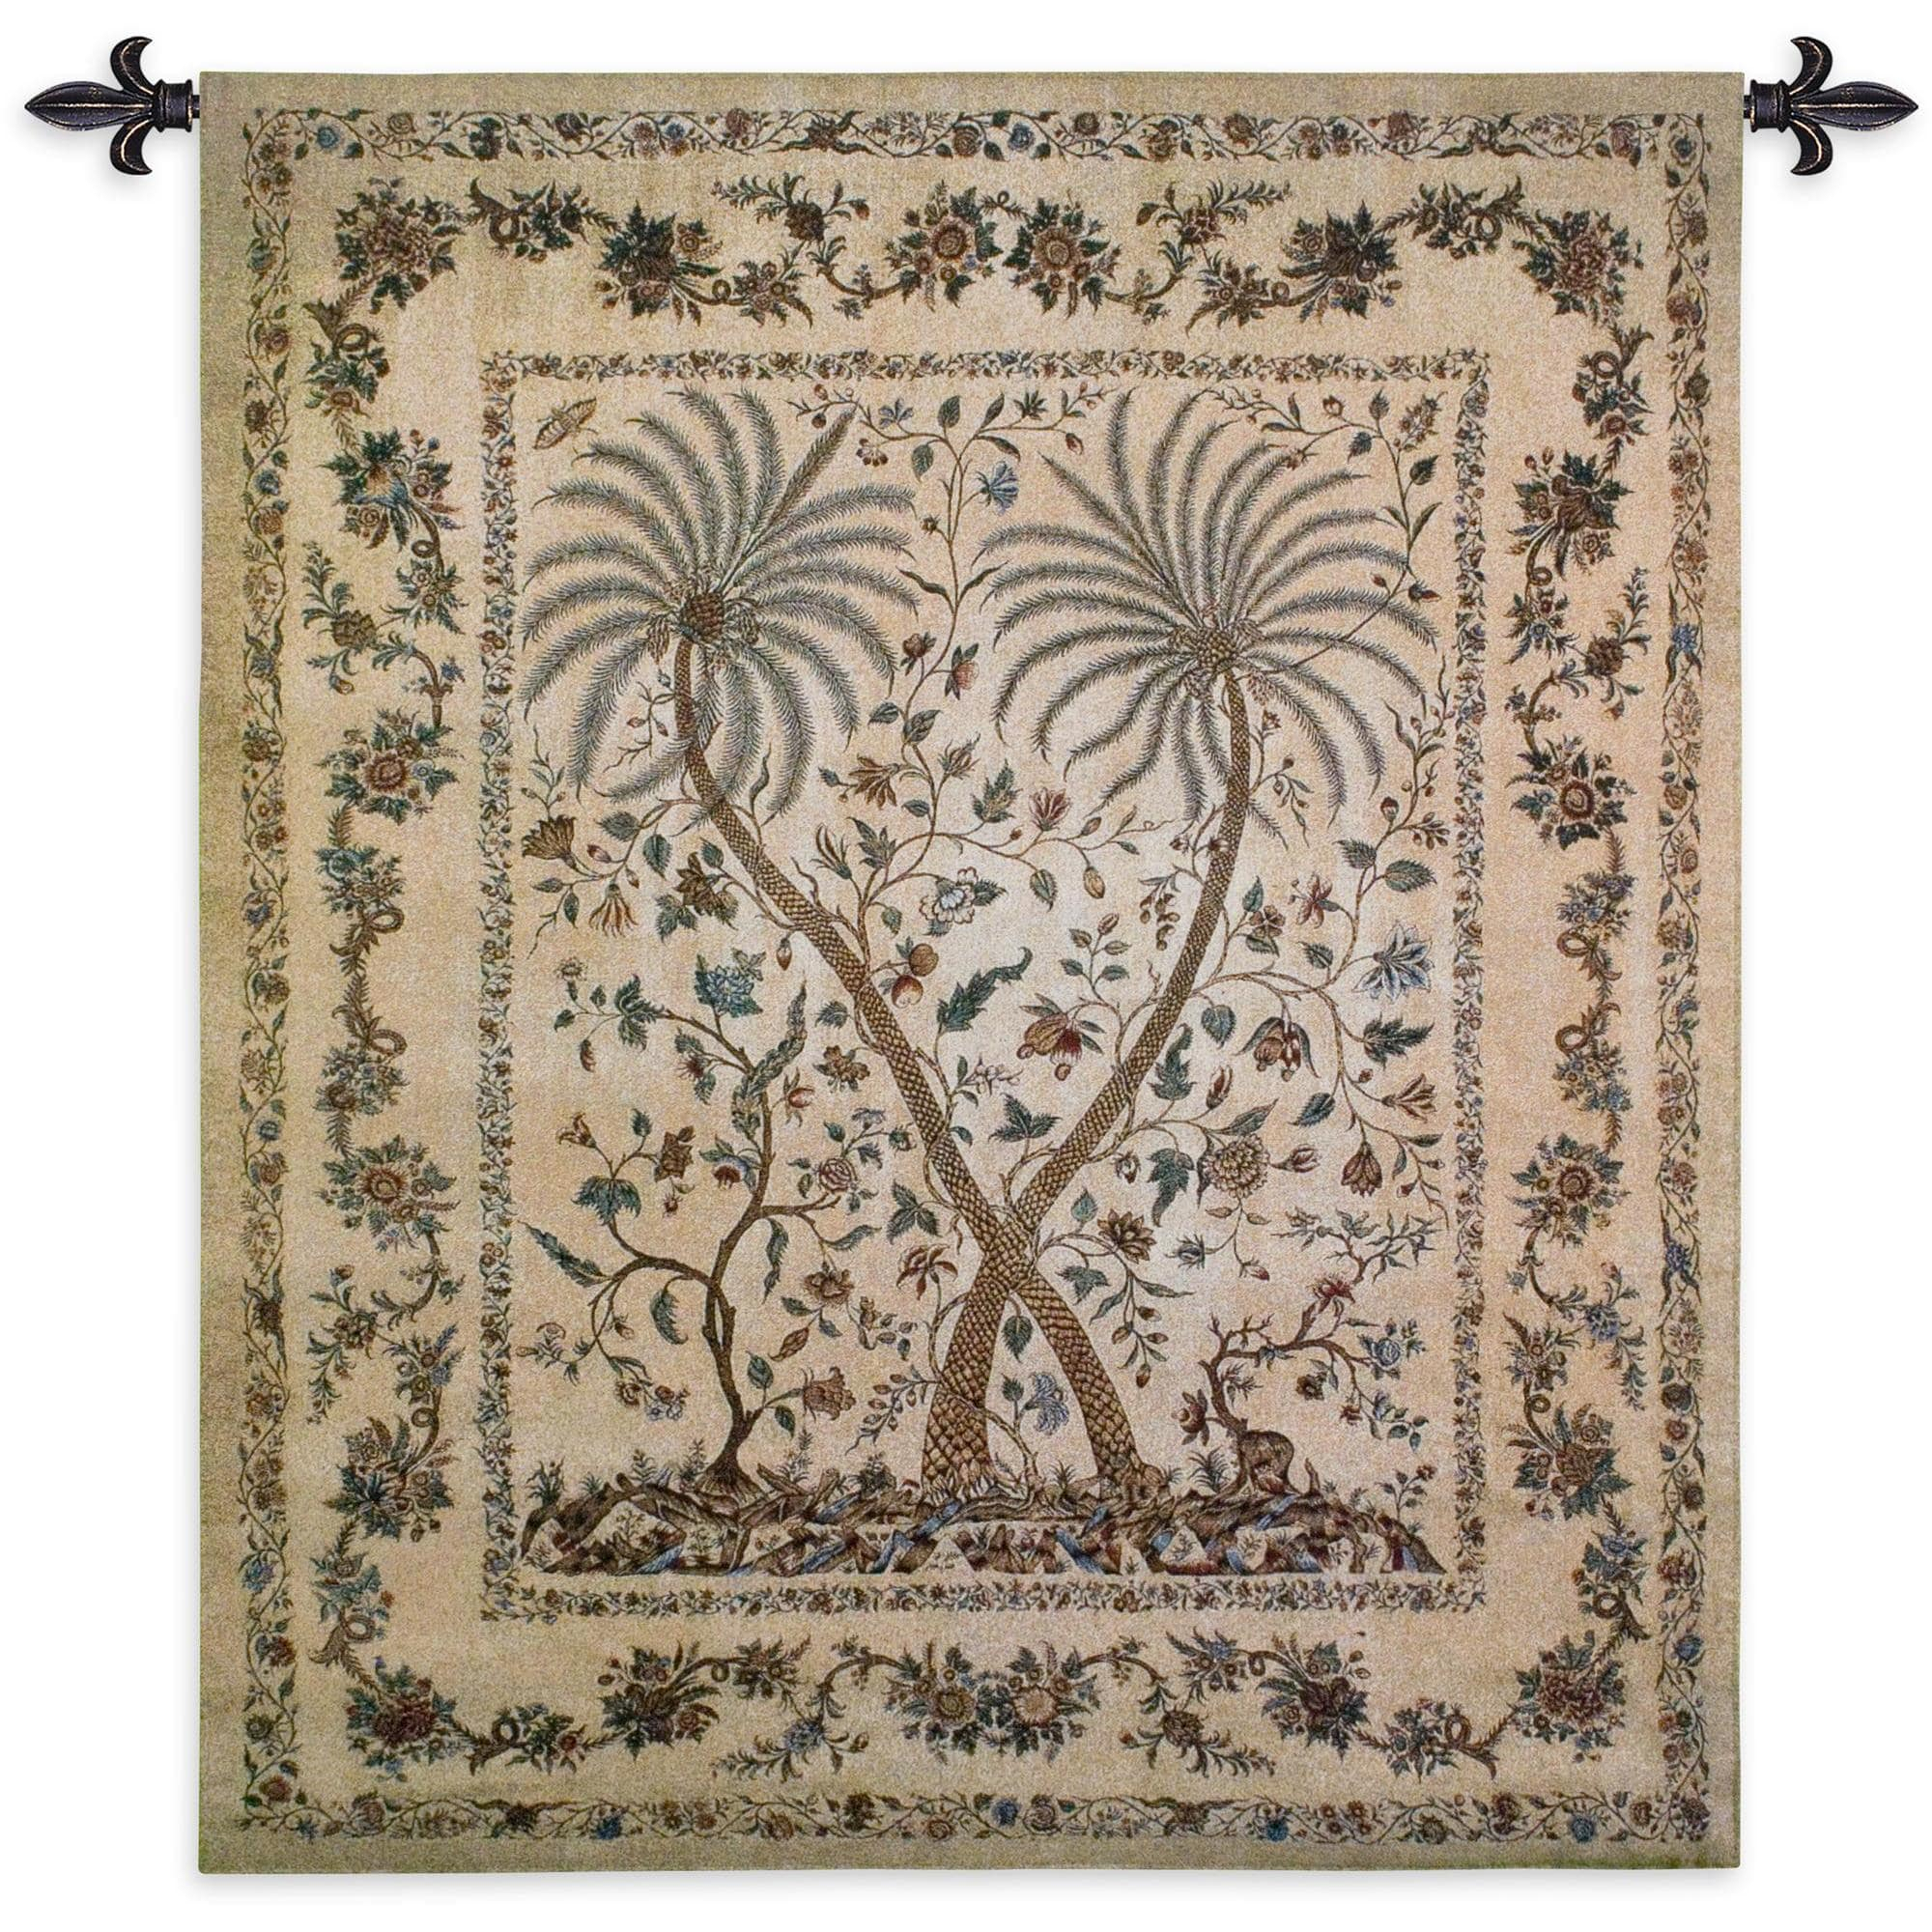 Finearttapestries 3145 Wh Palampore Wall Tapestry Regarding Current Blended Fabric The Broken Chain Tapestries And Wall Hangings (View 3 of 20)